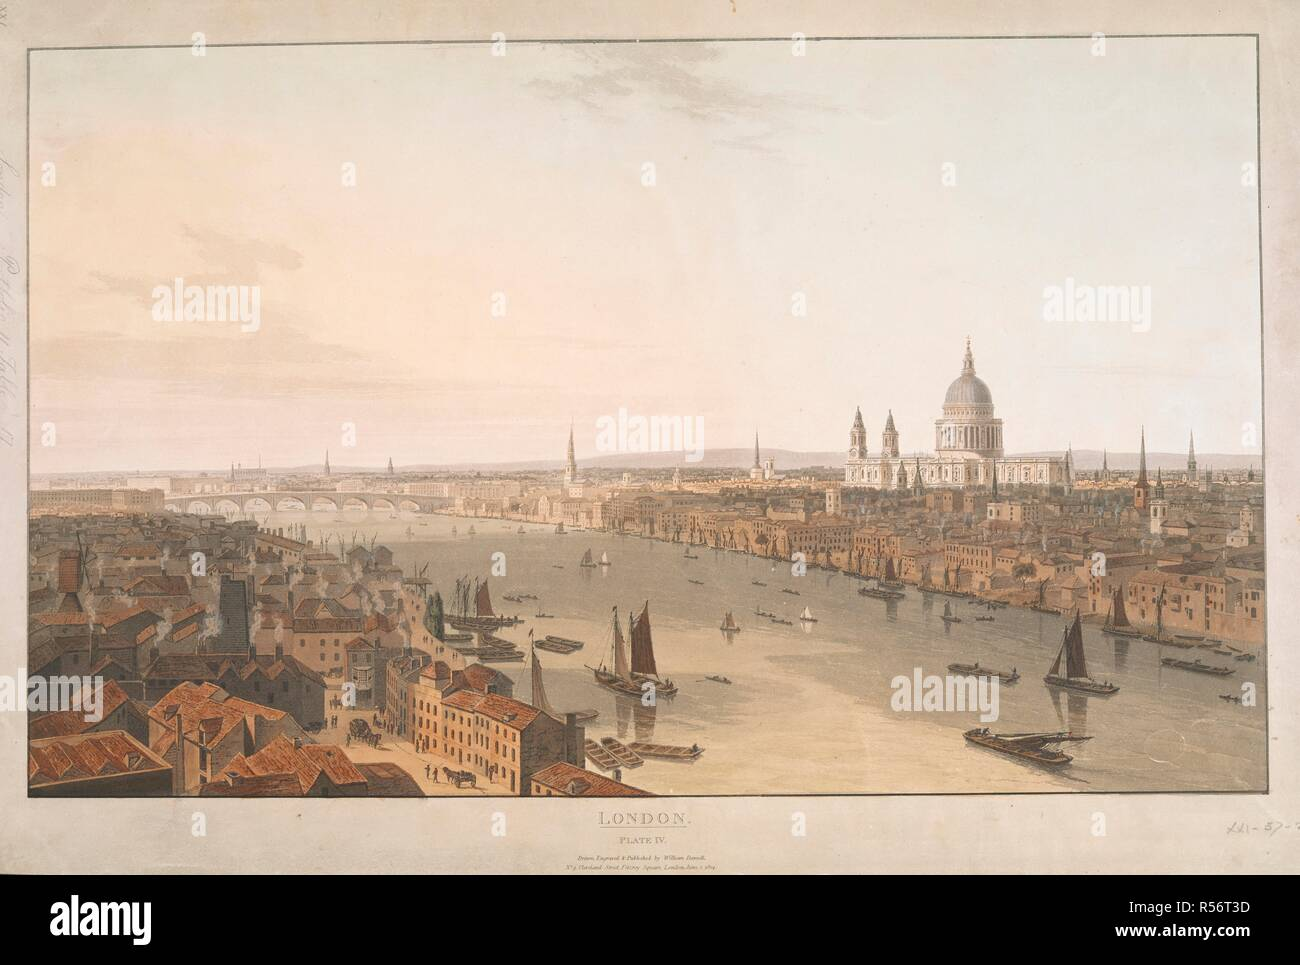 London / Plate IV. View westwards from the south bank along the Thames with St Paul's upper right. . Six Views of London, by Wm. Daniell, 1804,5. [London] : No. 9 Cleveland Street, Fitzroy Square, London, June 1 1804. Source: Maps K.Top.21.57.2d.Port.11.Tab. Author: DANIELL, WILLIAM. - Stock Image